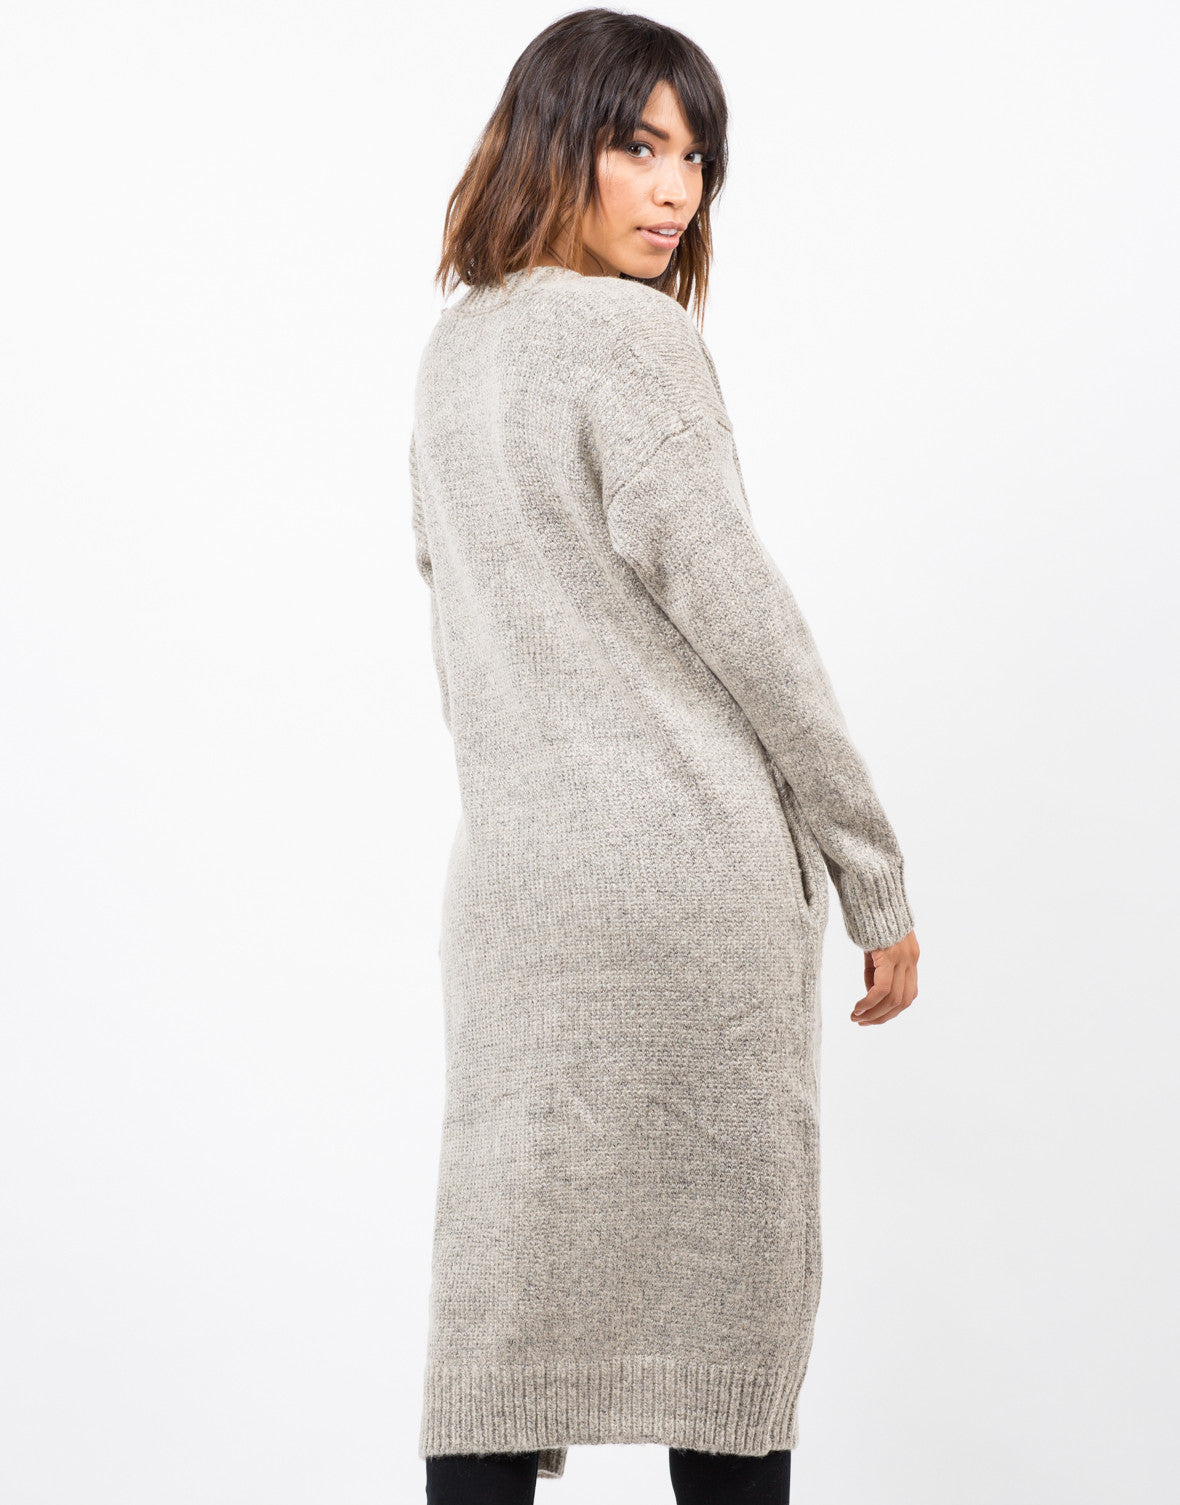 Back View of Chunky Long Knit Cardigan